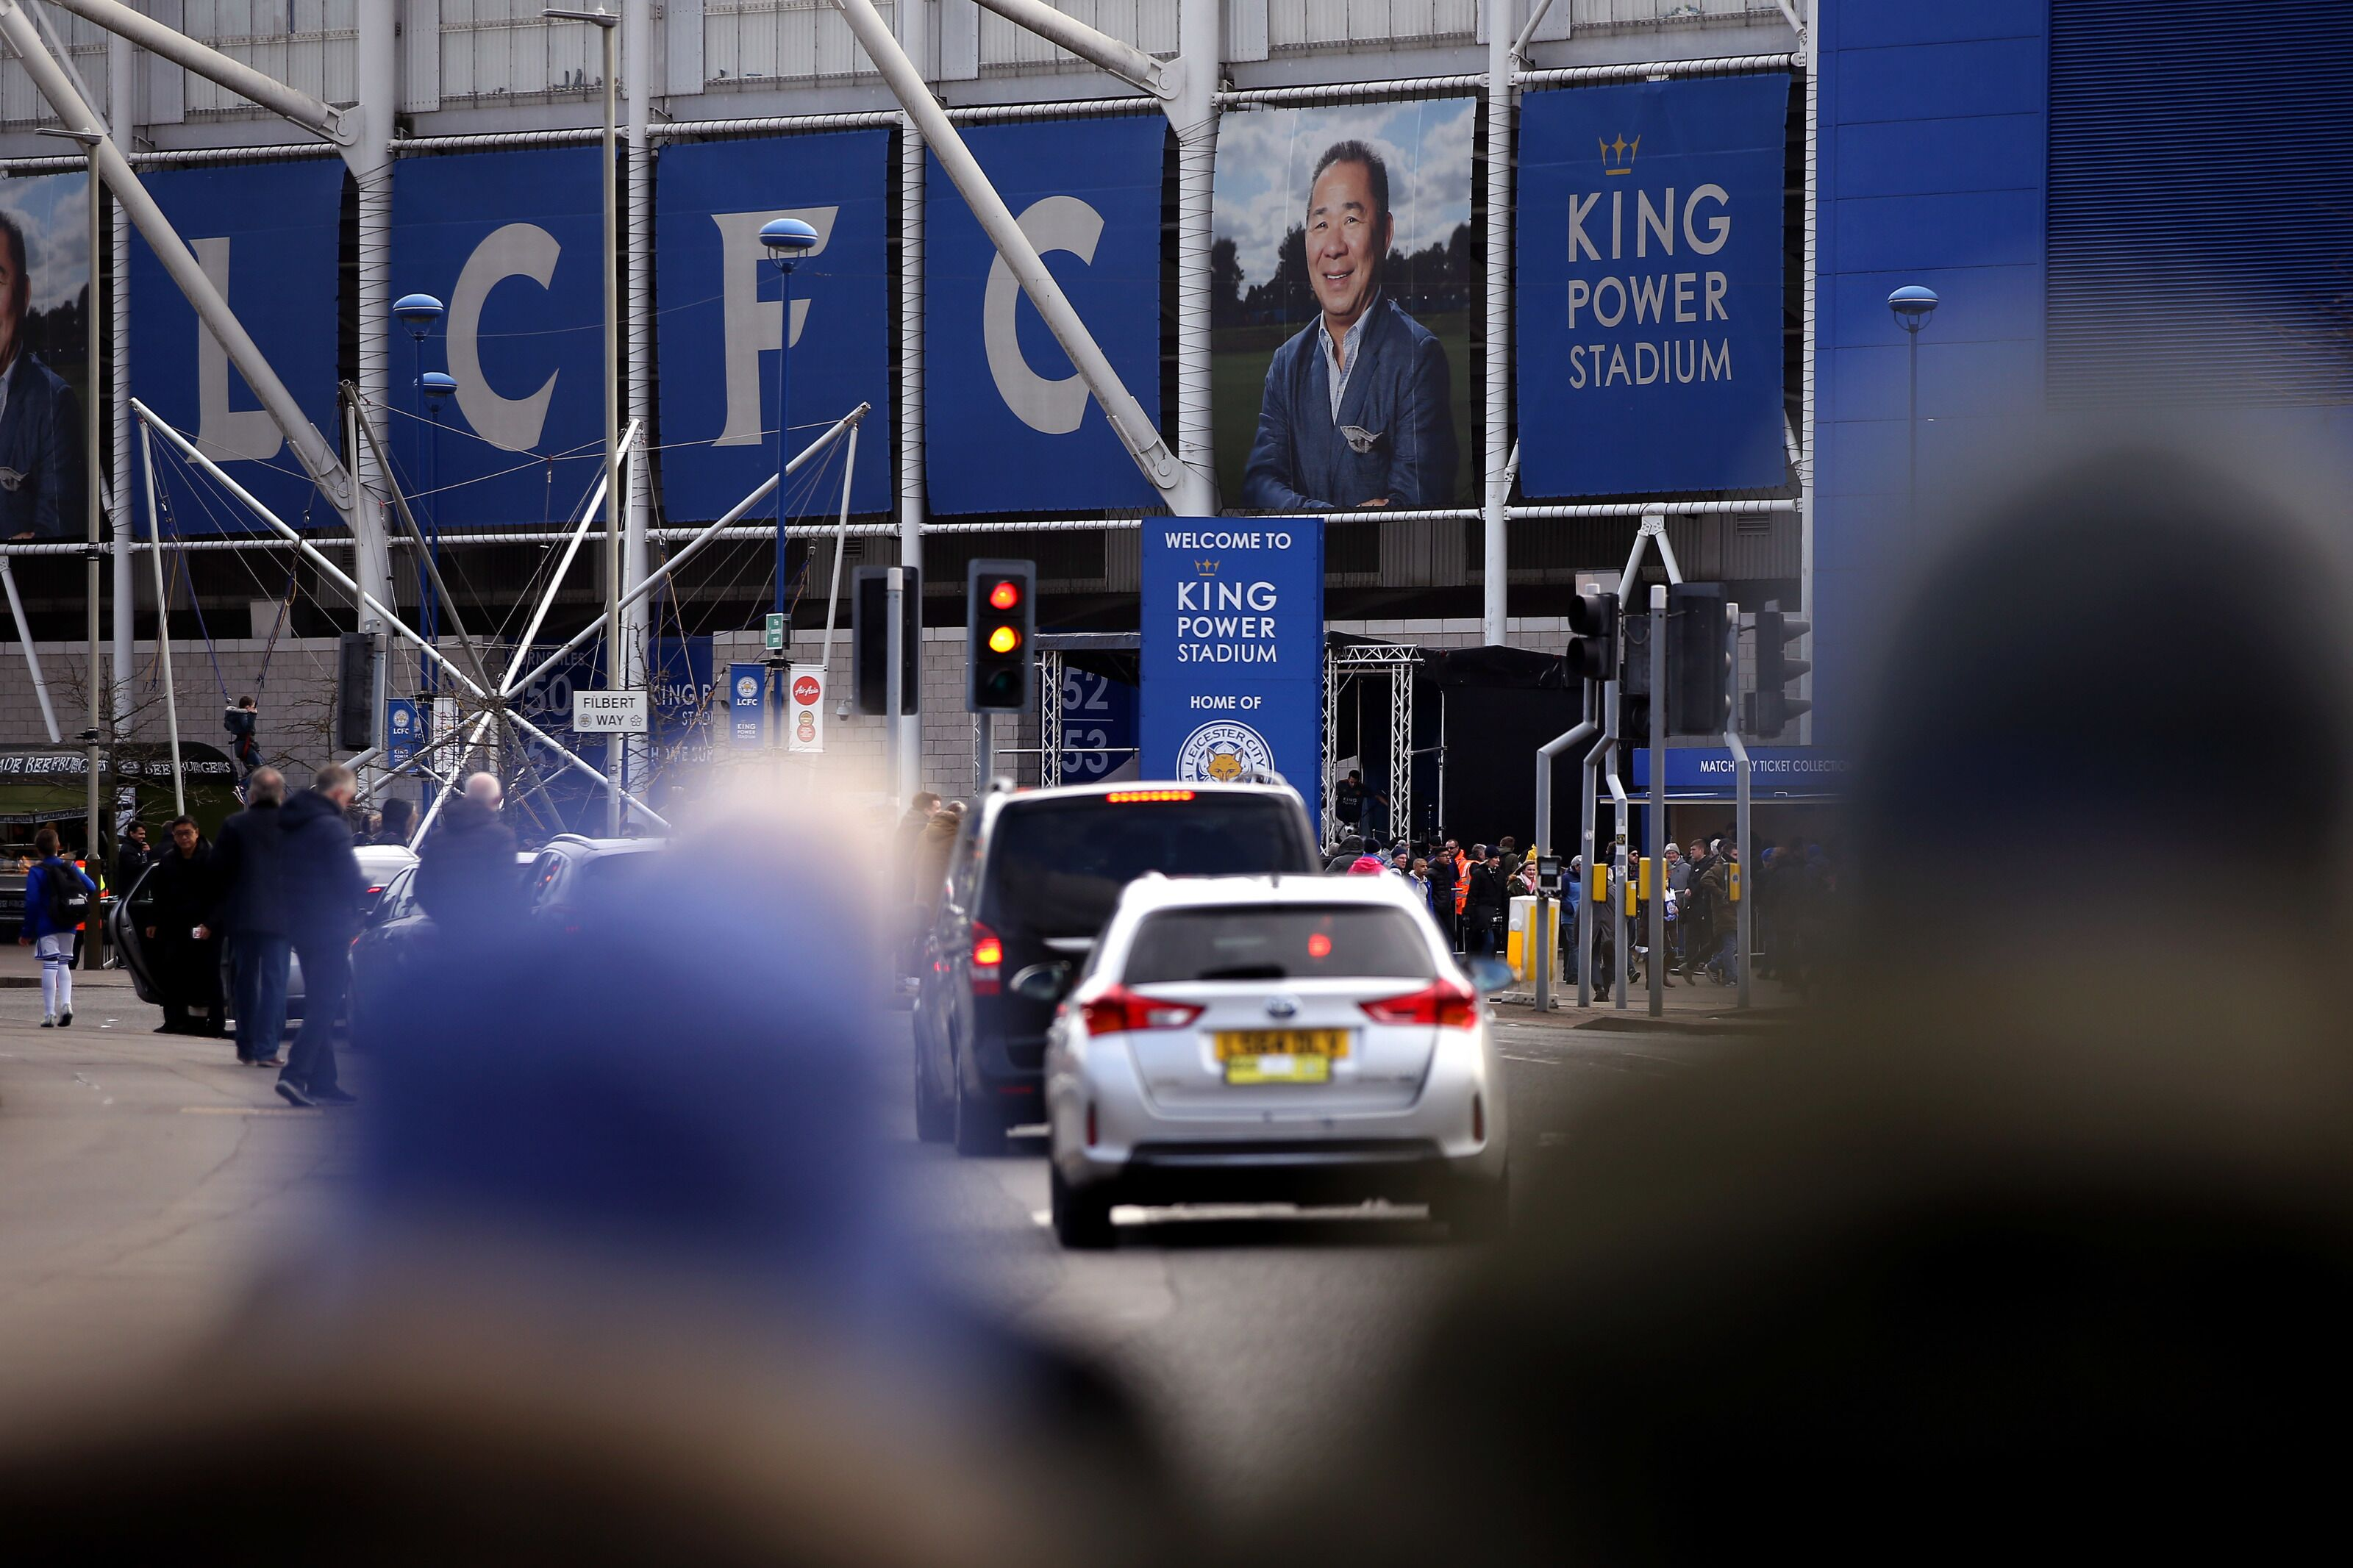 Leicester City's pre-season schedule and stadium expansion plans